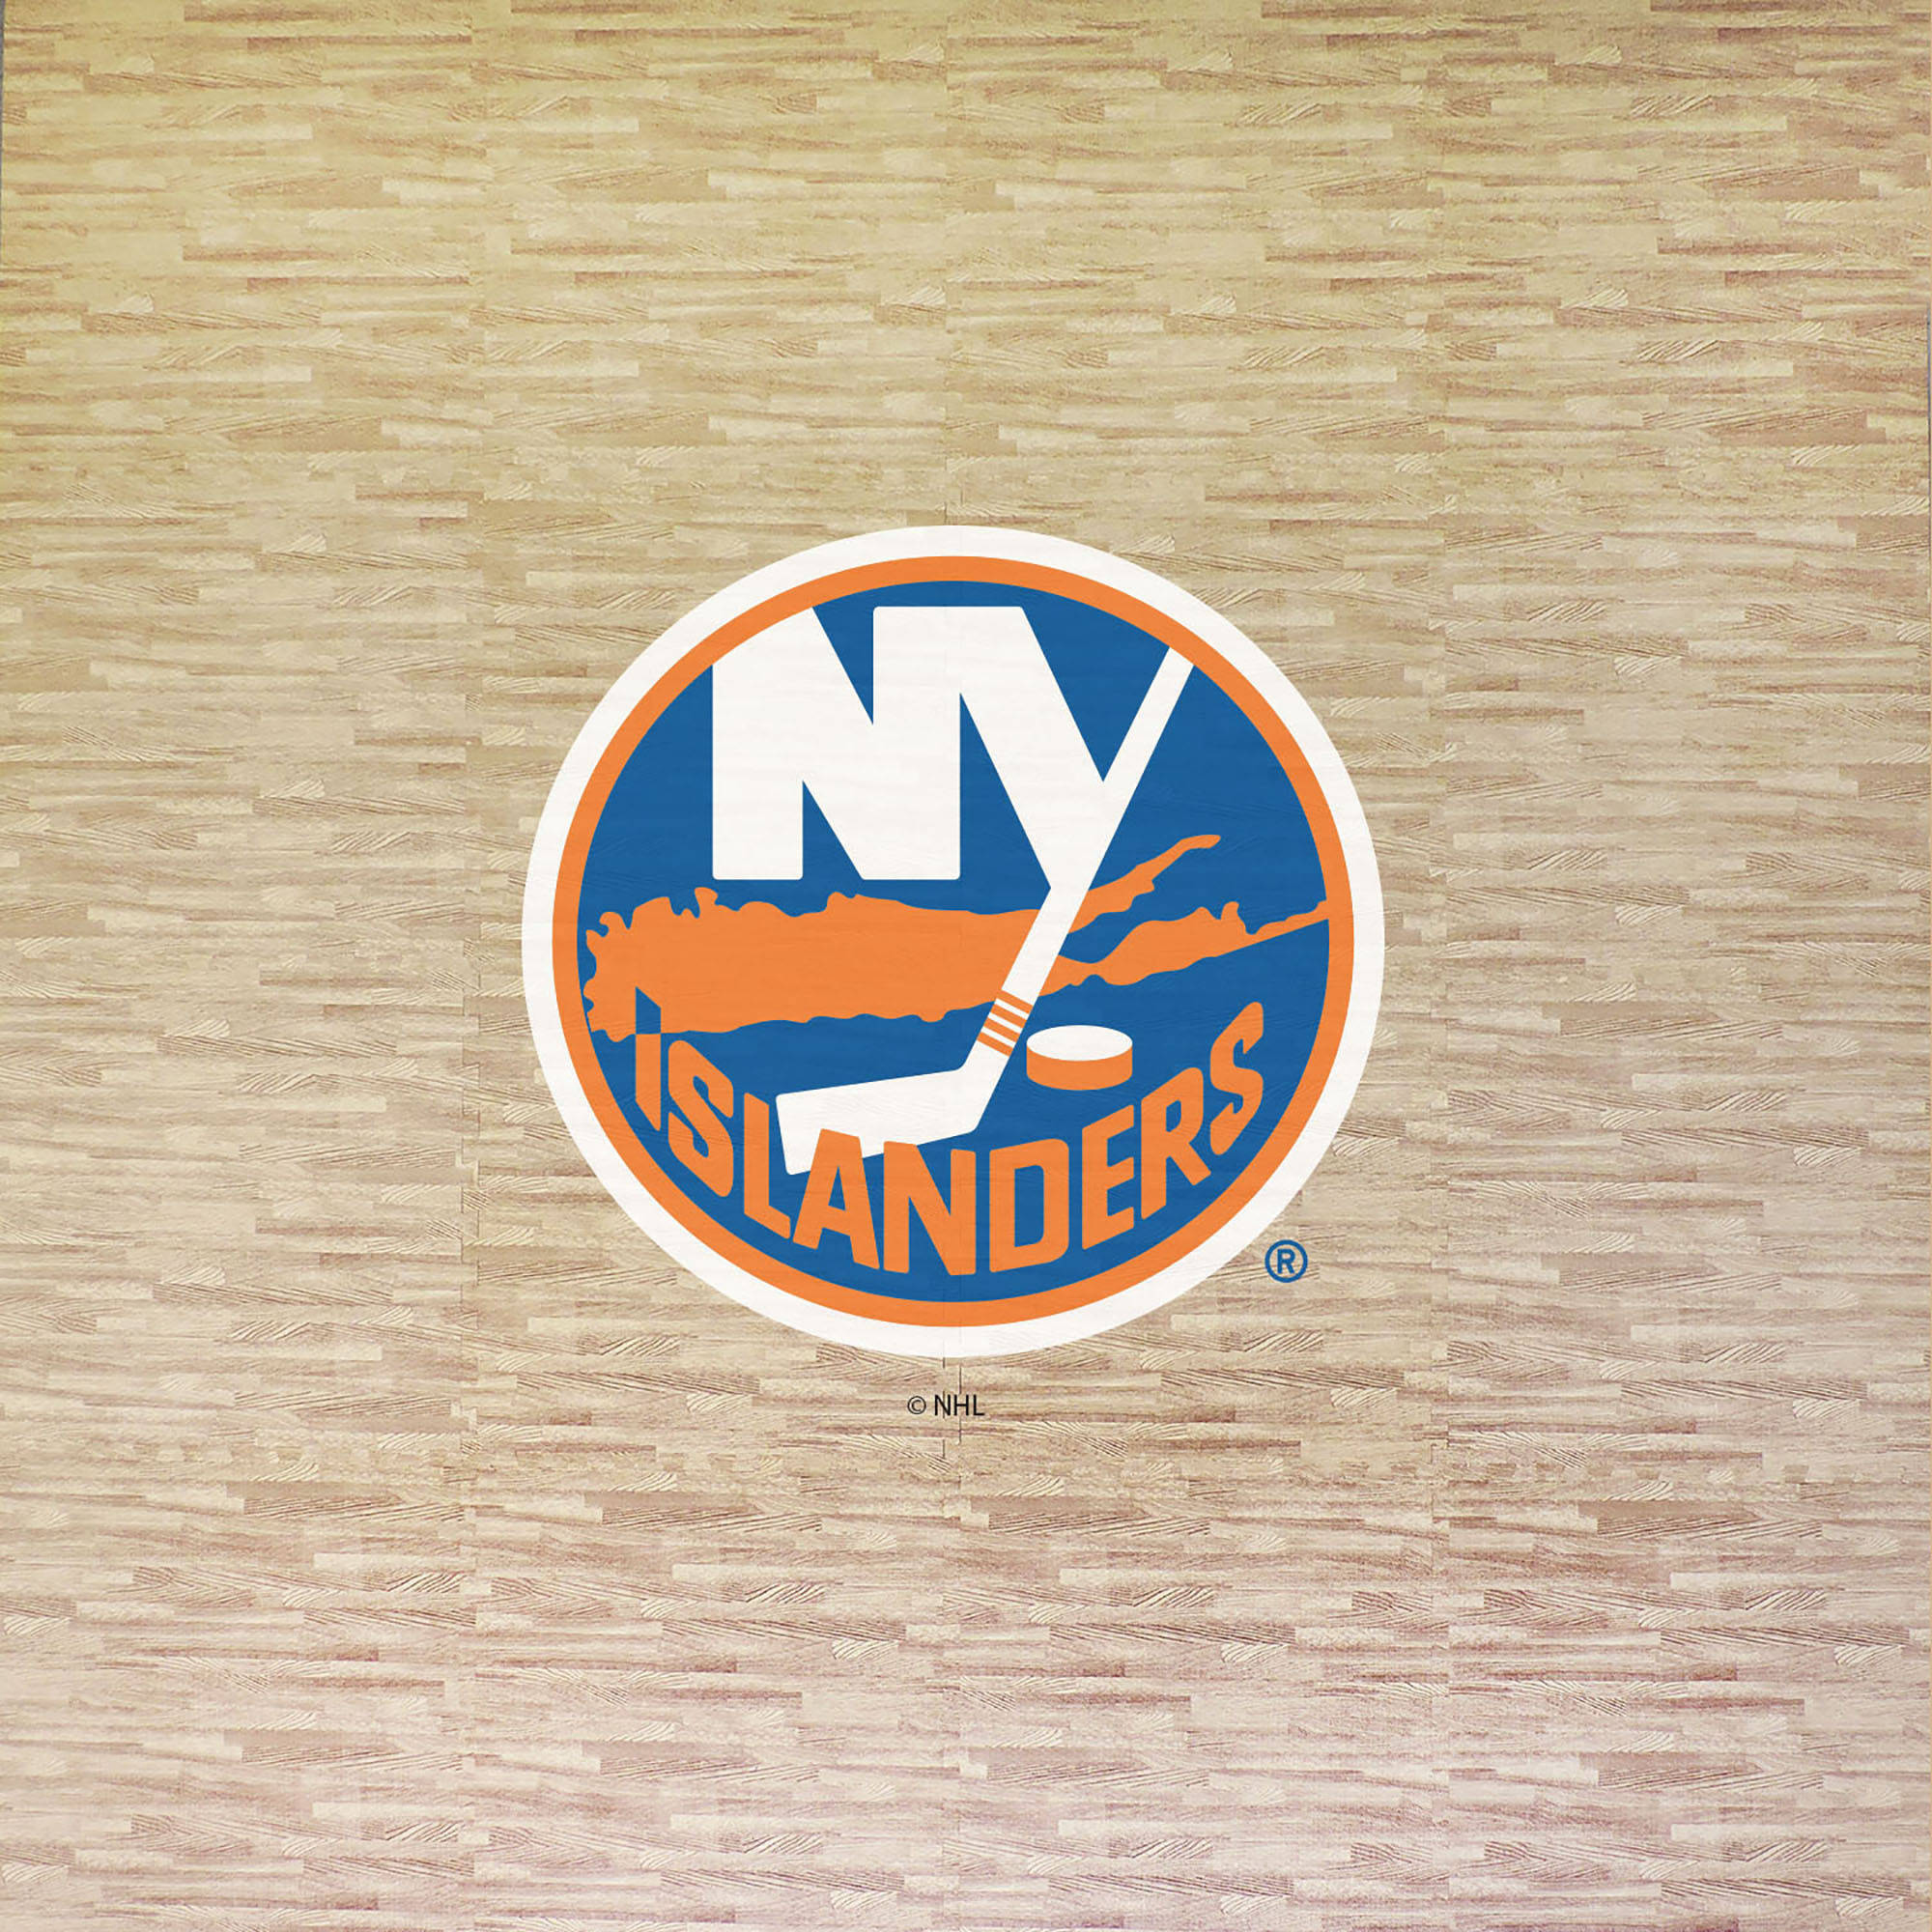 NHL New York Islanders Portable Foam Puzzle Tailgate Floor Mat by Coopersburg Sports